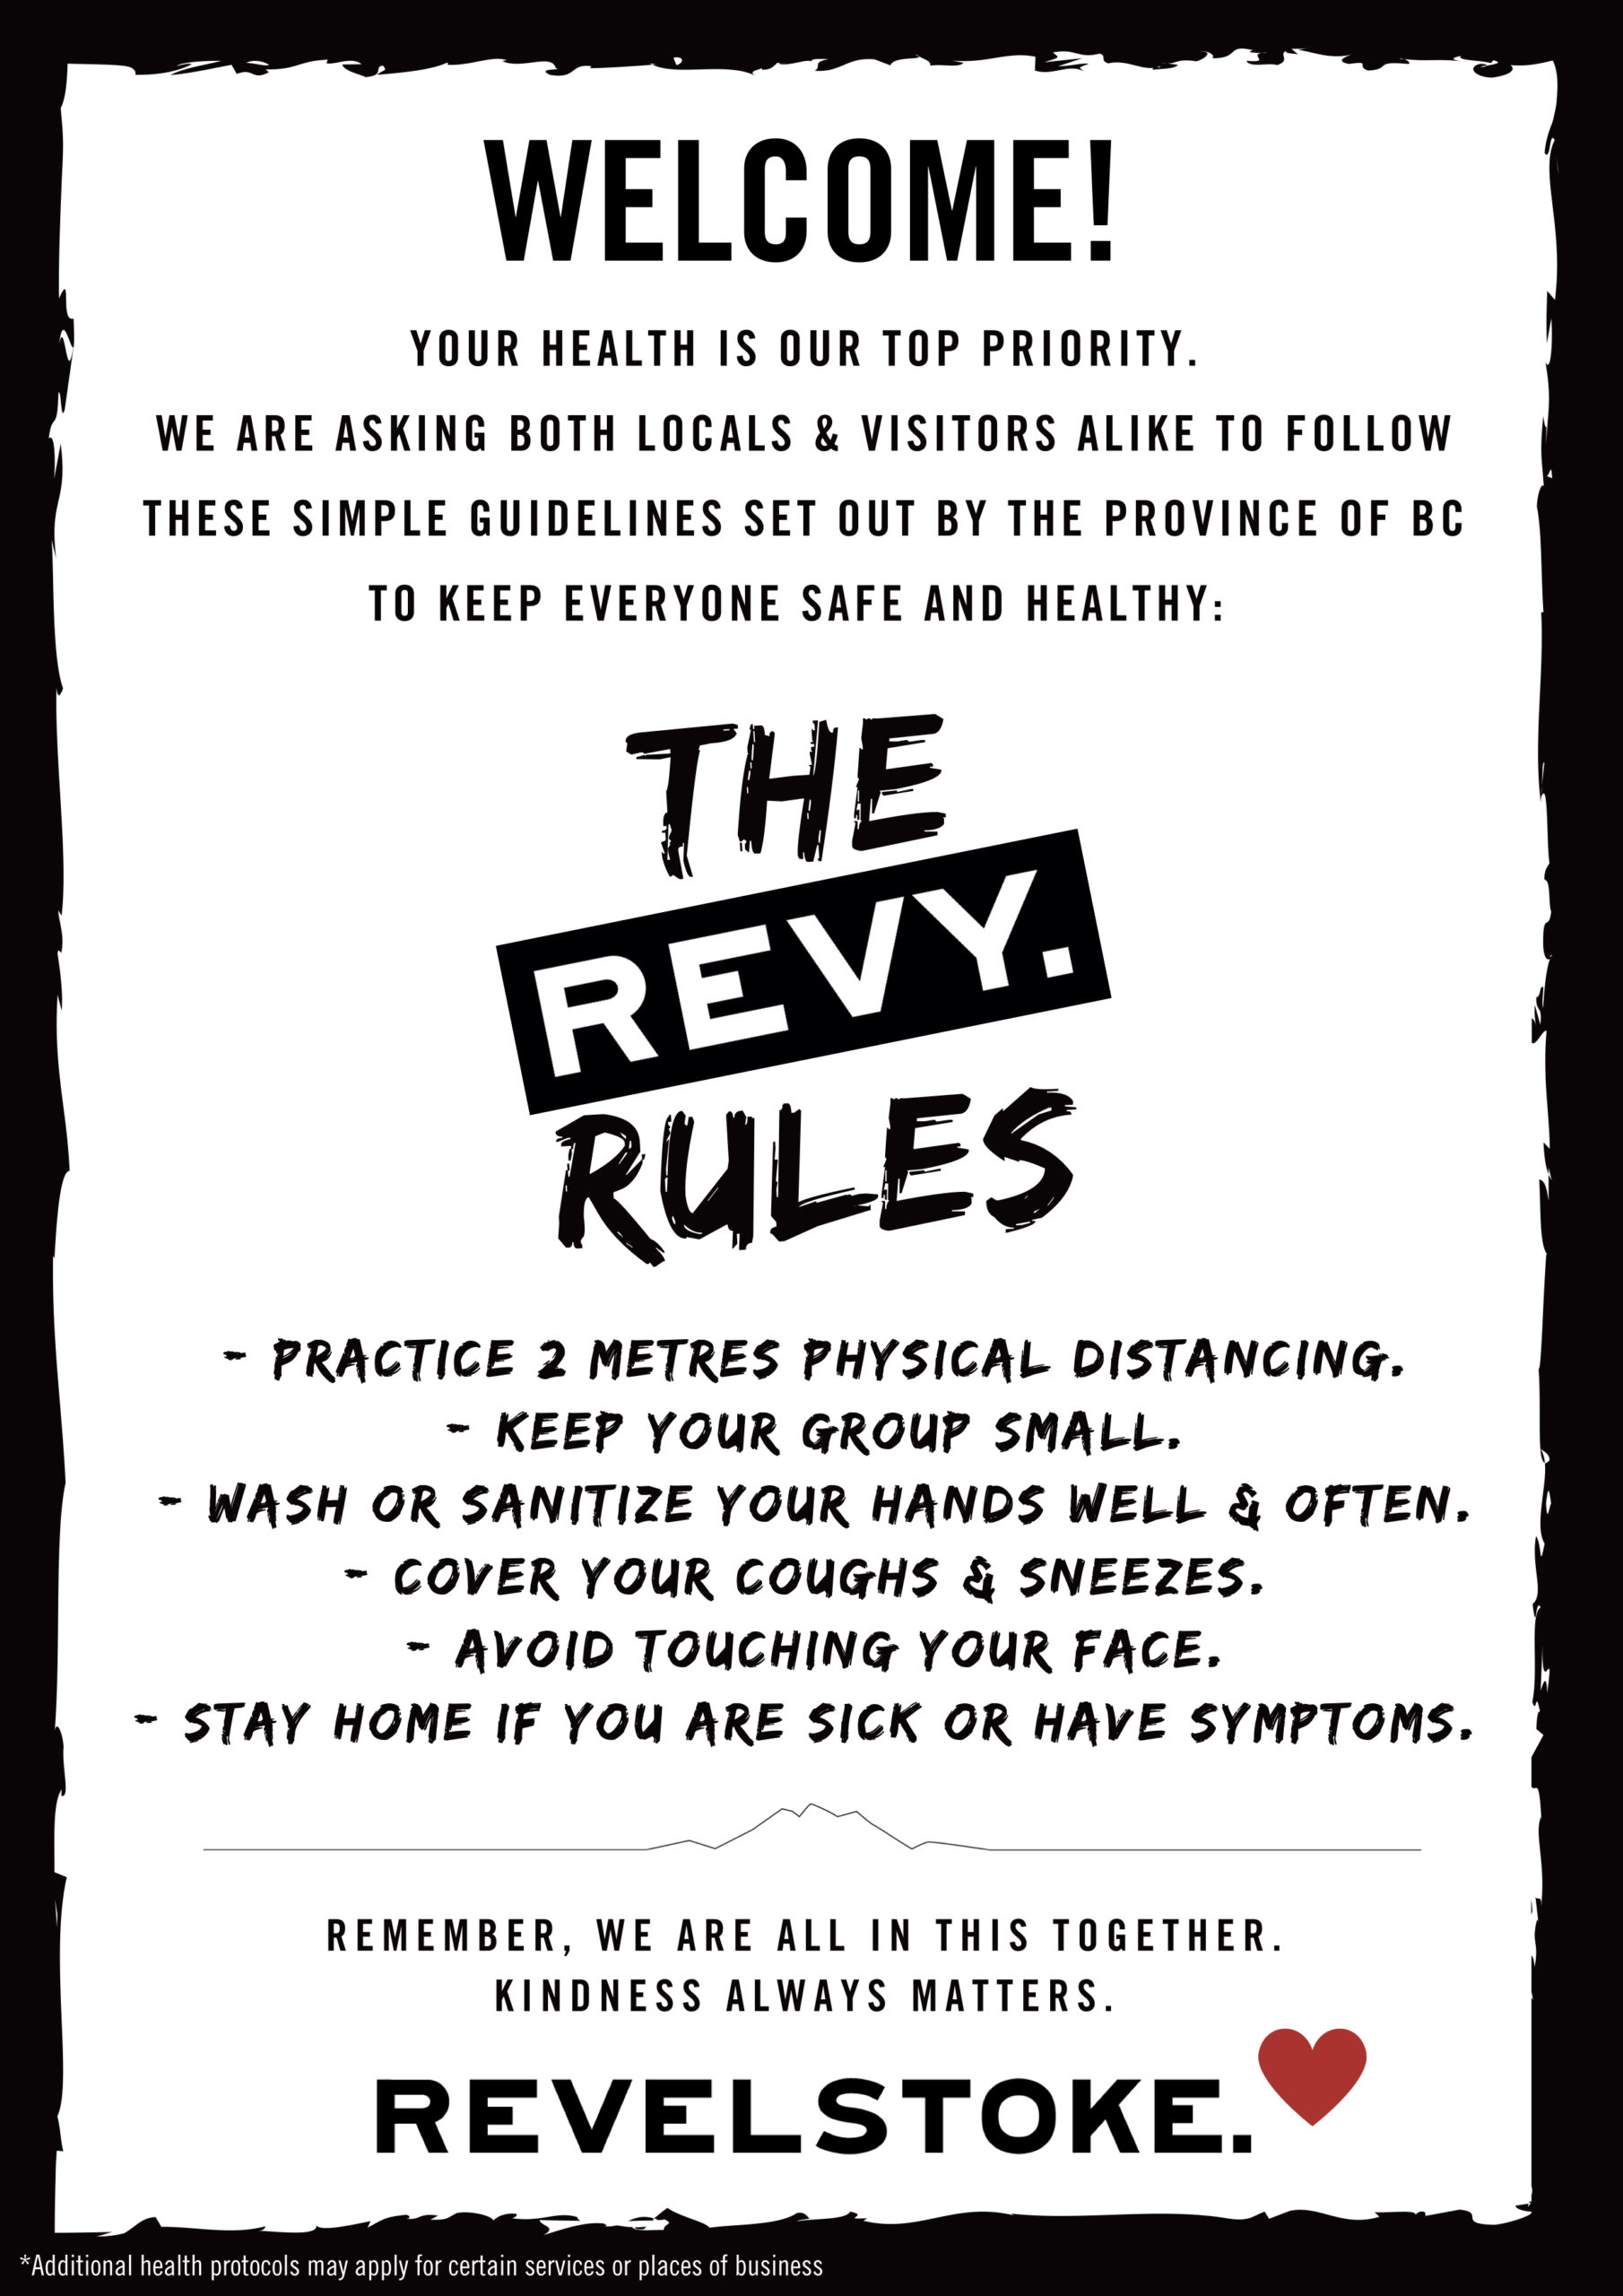 The Revy Rules of COVID-19